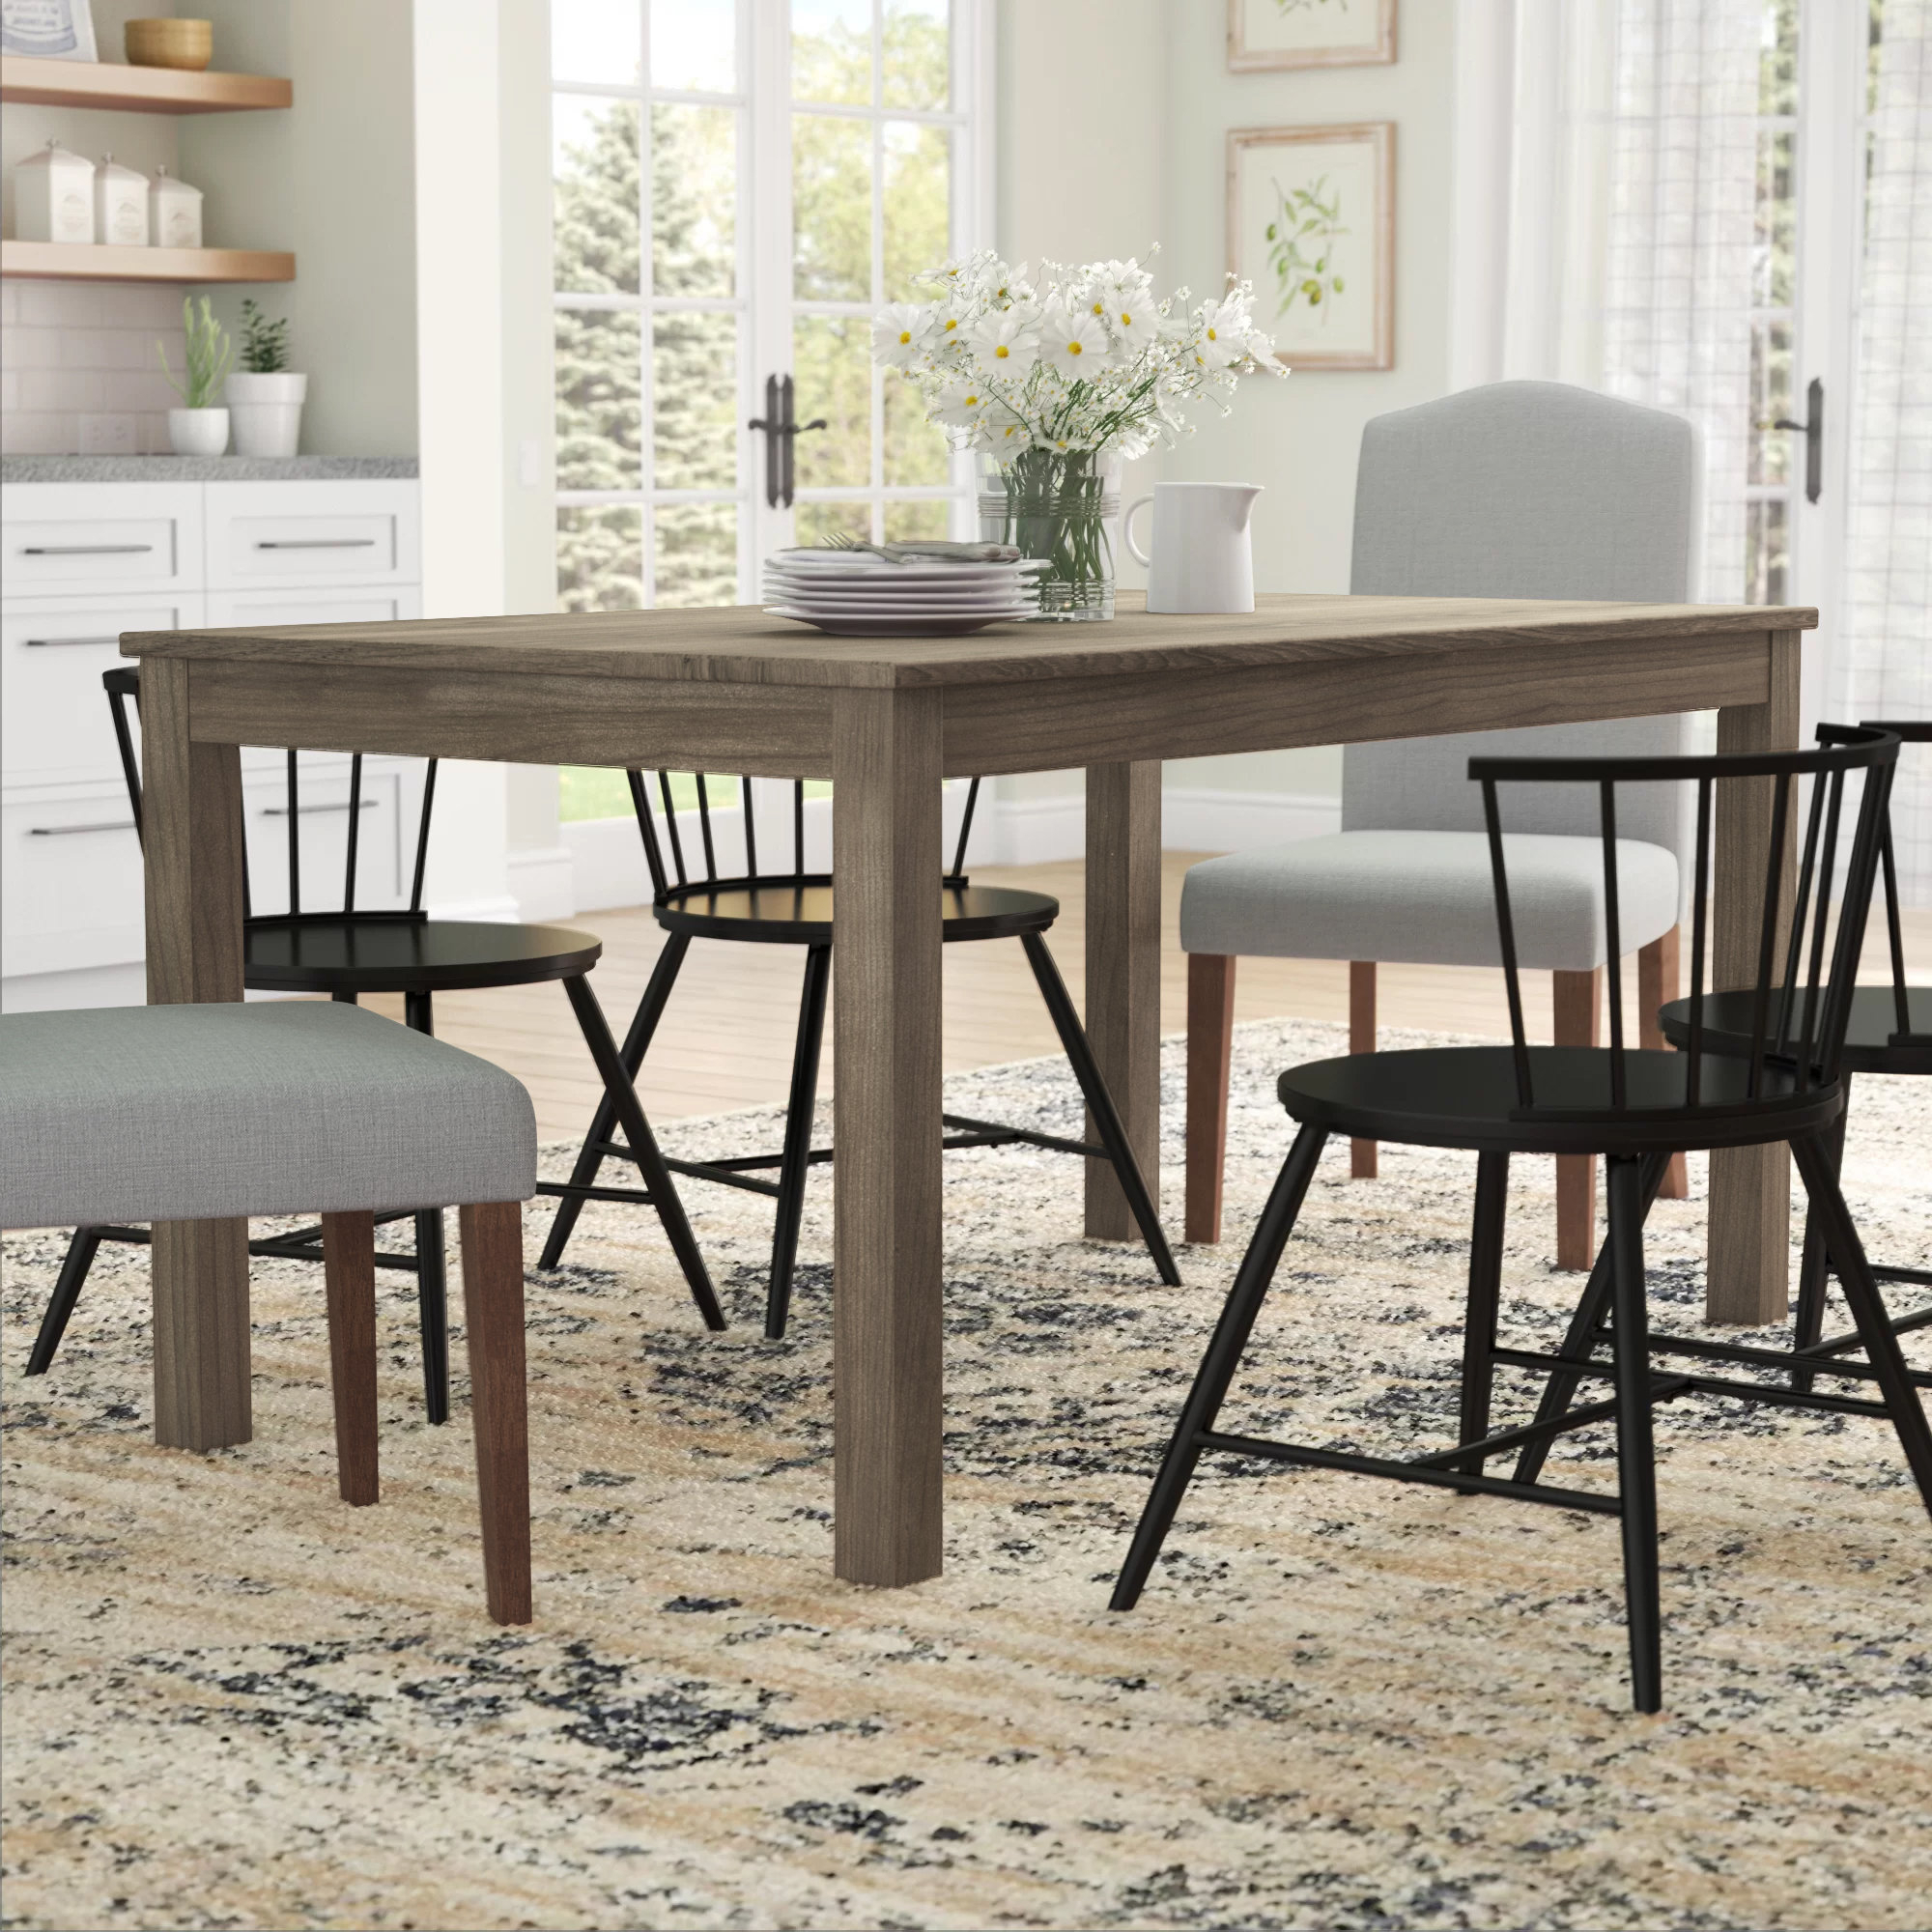 Widely Used Selina Wood Dining Table With Regard To Goodman 5 Piece Solid Wood Dining Sets (Set Of 5) (View 20 of 20)